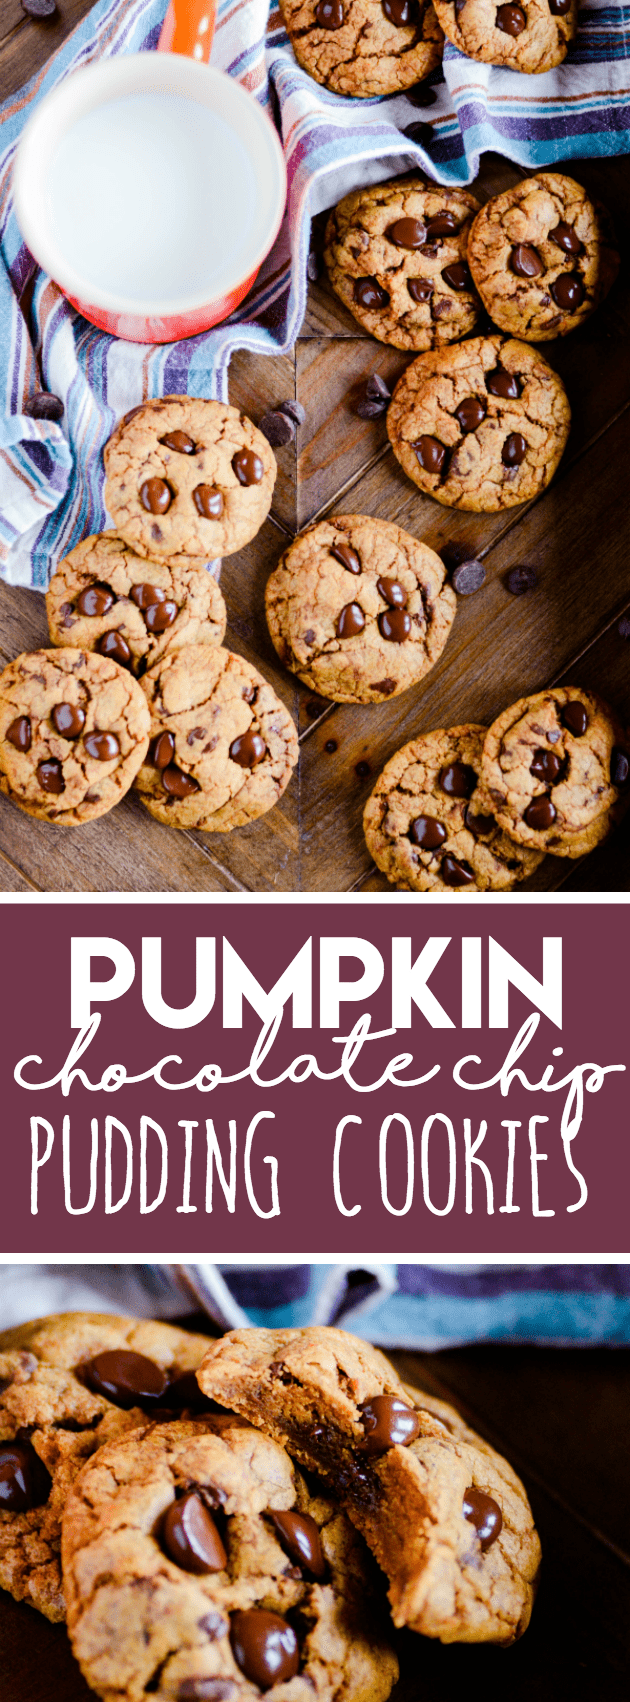 These pumpkin pudding cookies are the BEST pumpkin cookies on the planet!